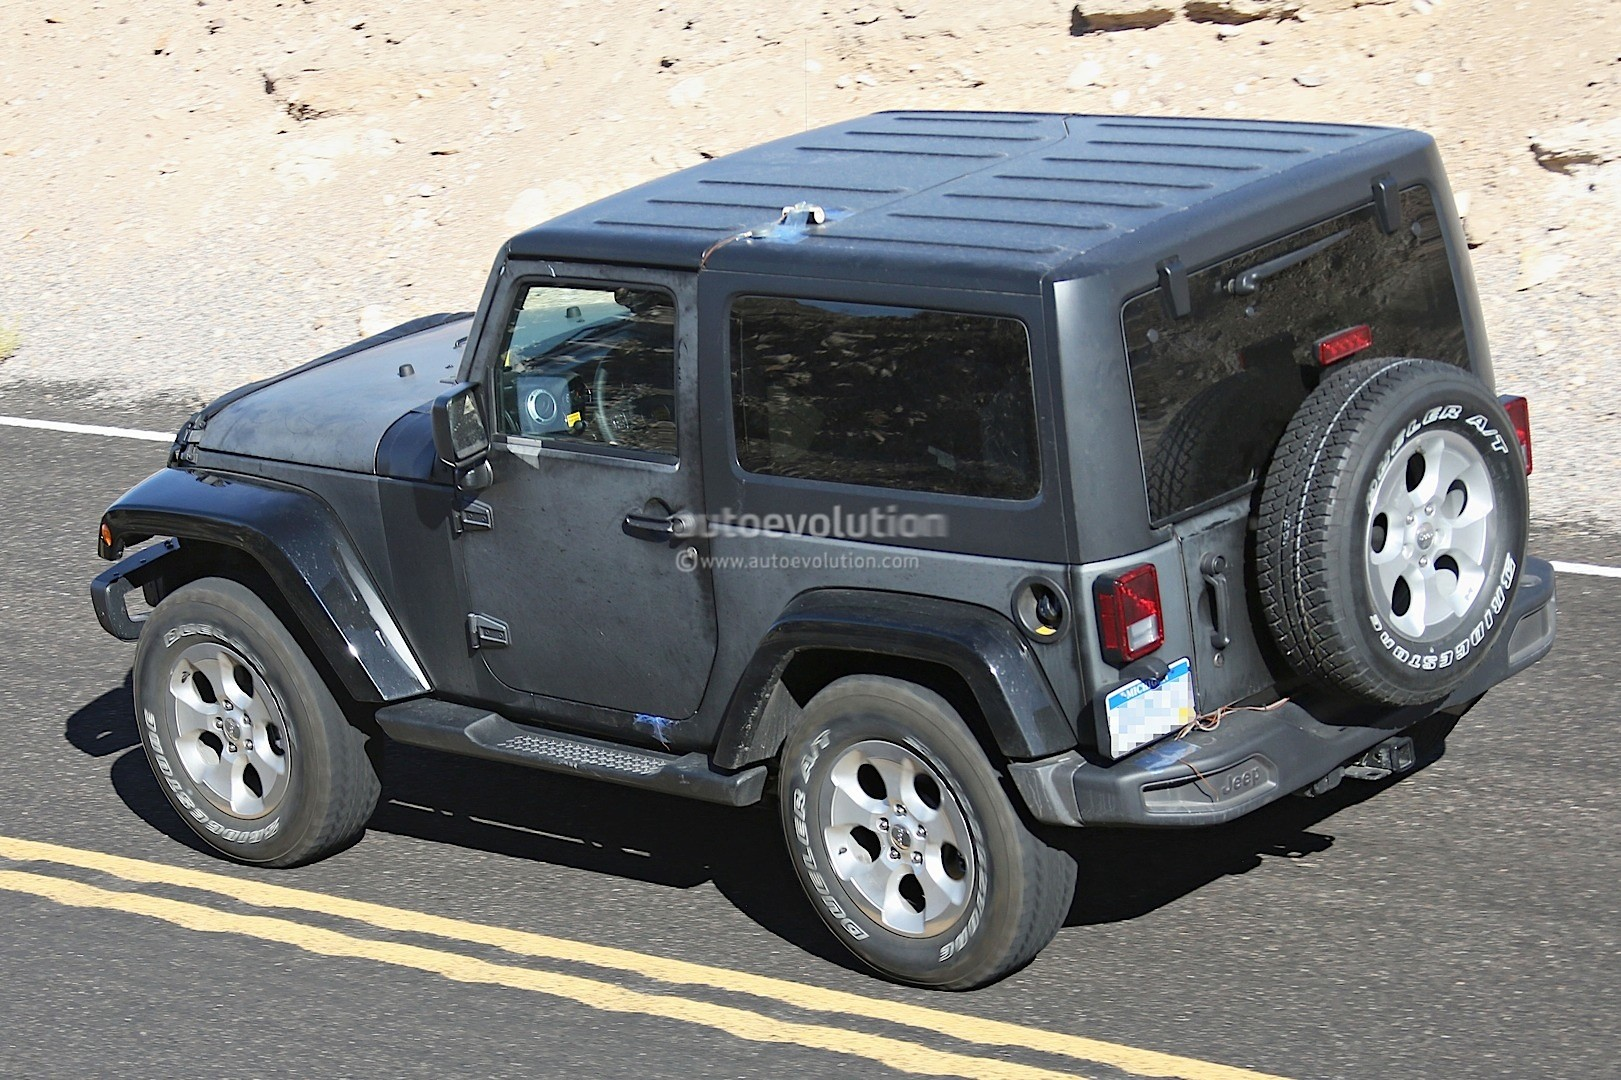 2018 jeep wrangler (jl) with six-speed manual transmission